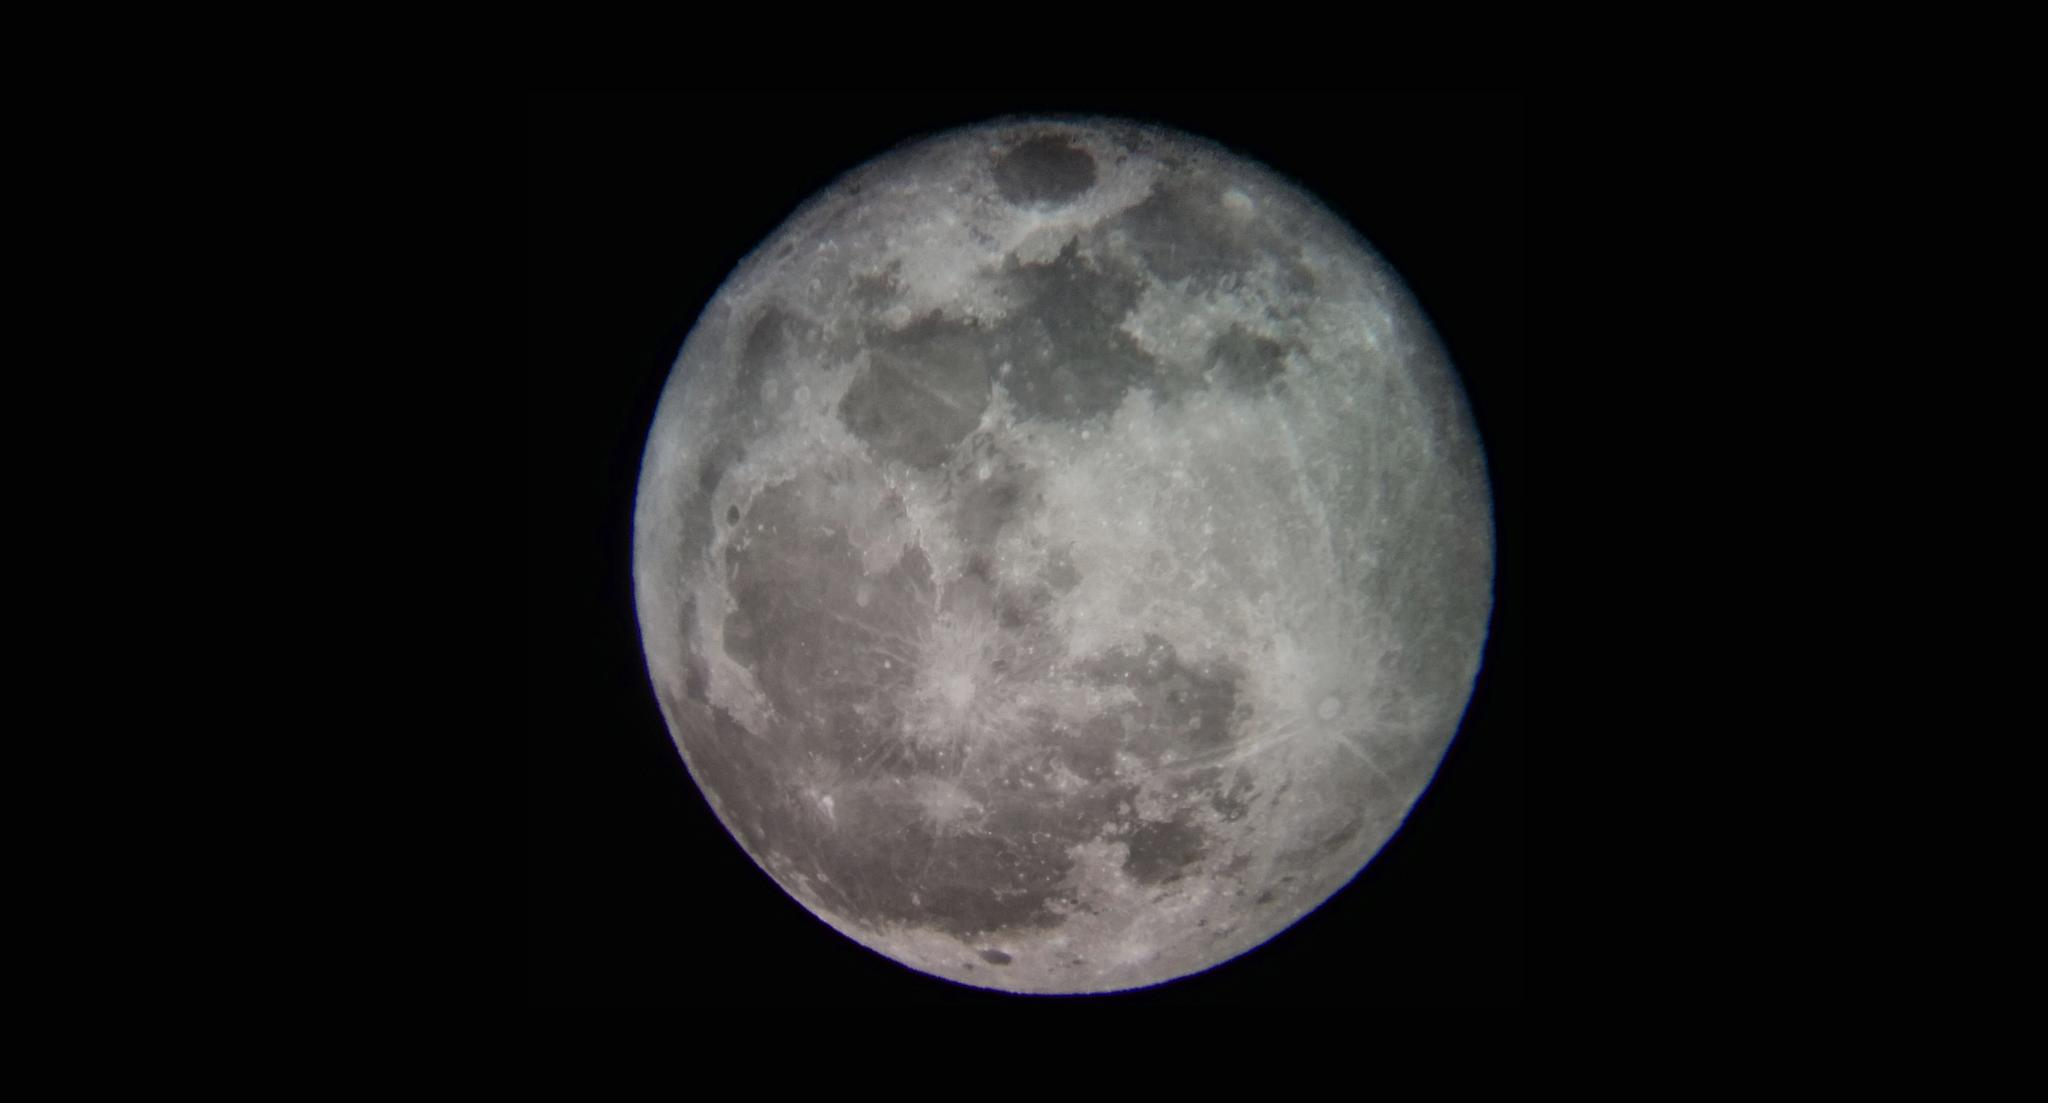 Full Moon by Dave359WA